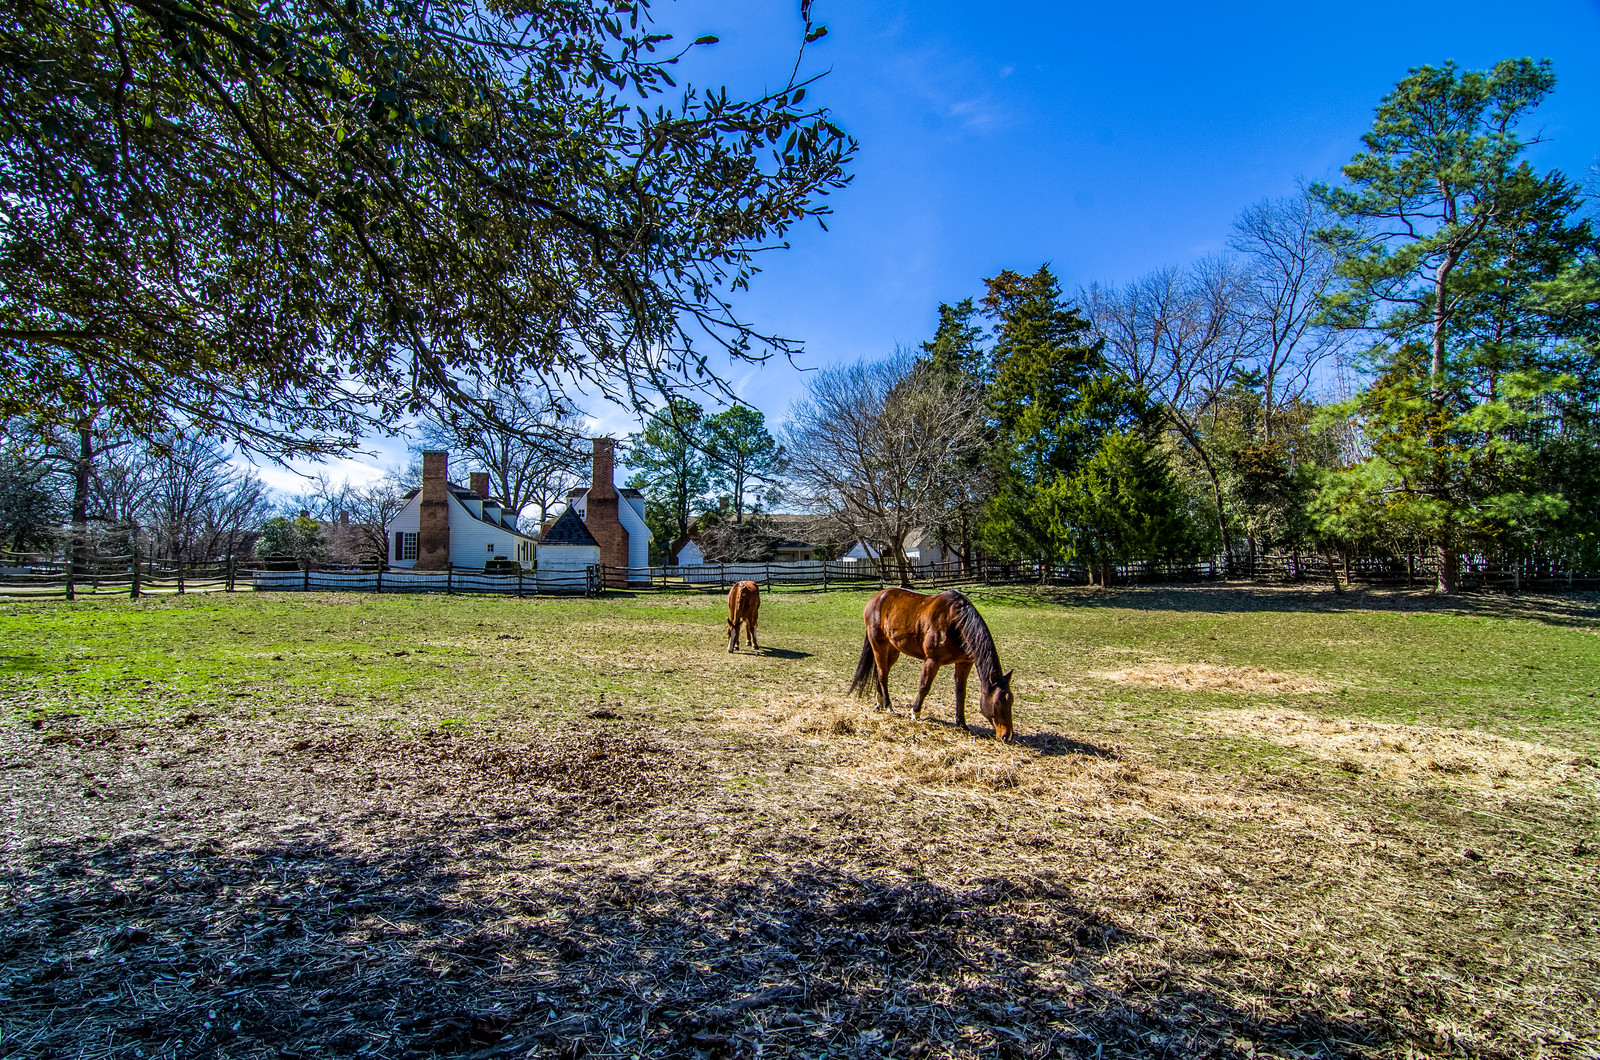 Farmhouse surrounded by nearby trees with split rail fence and two brown horses grazing in the yard